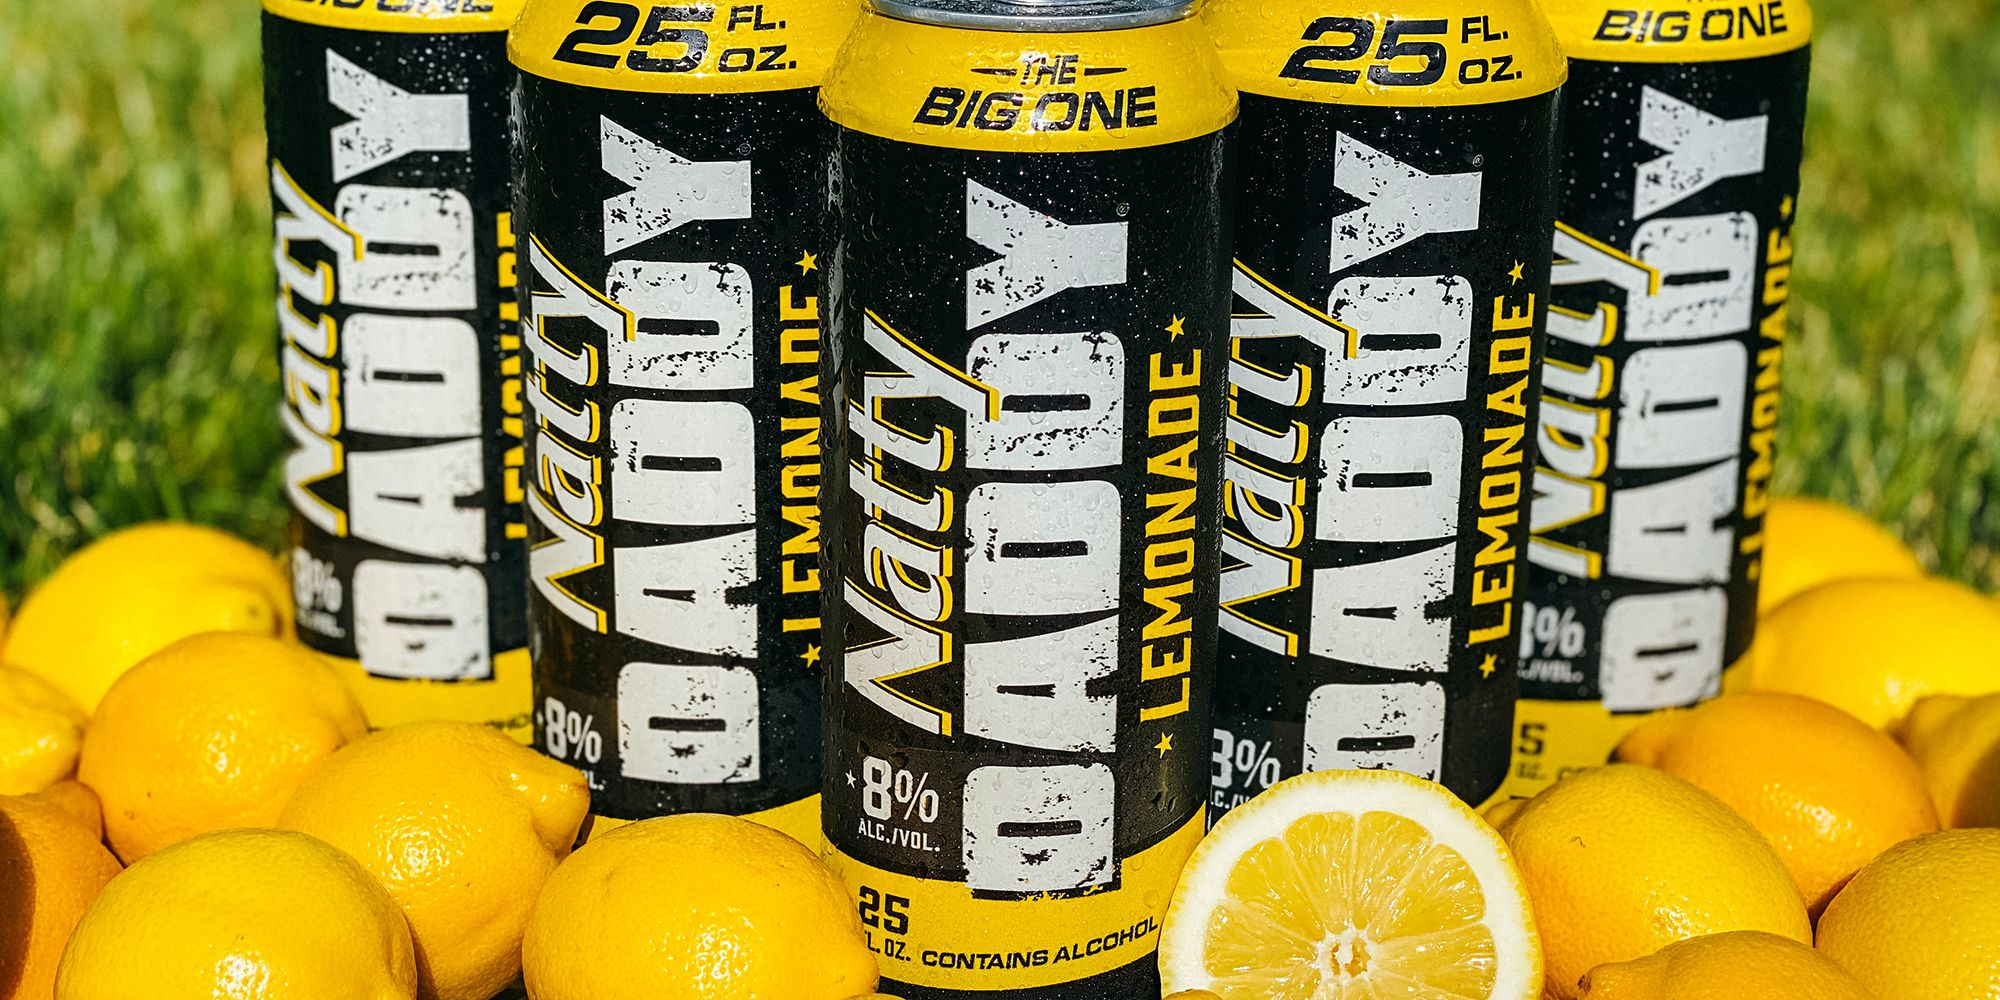 Pure Mild Welcomes a New Natty Daddy Lemonade